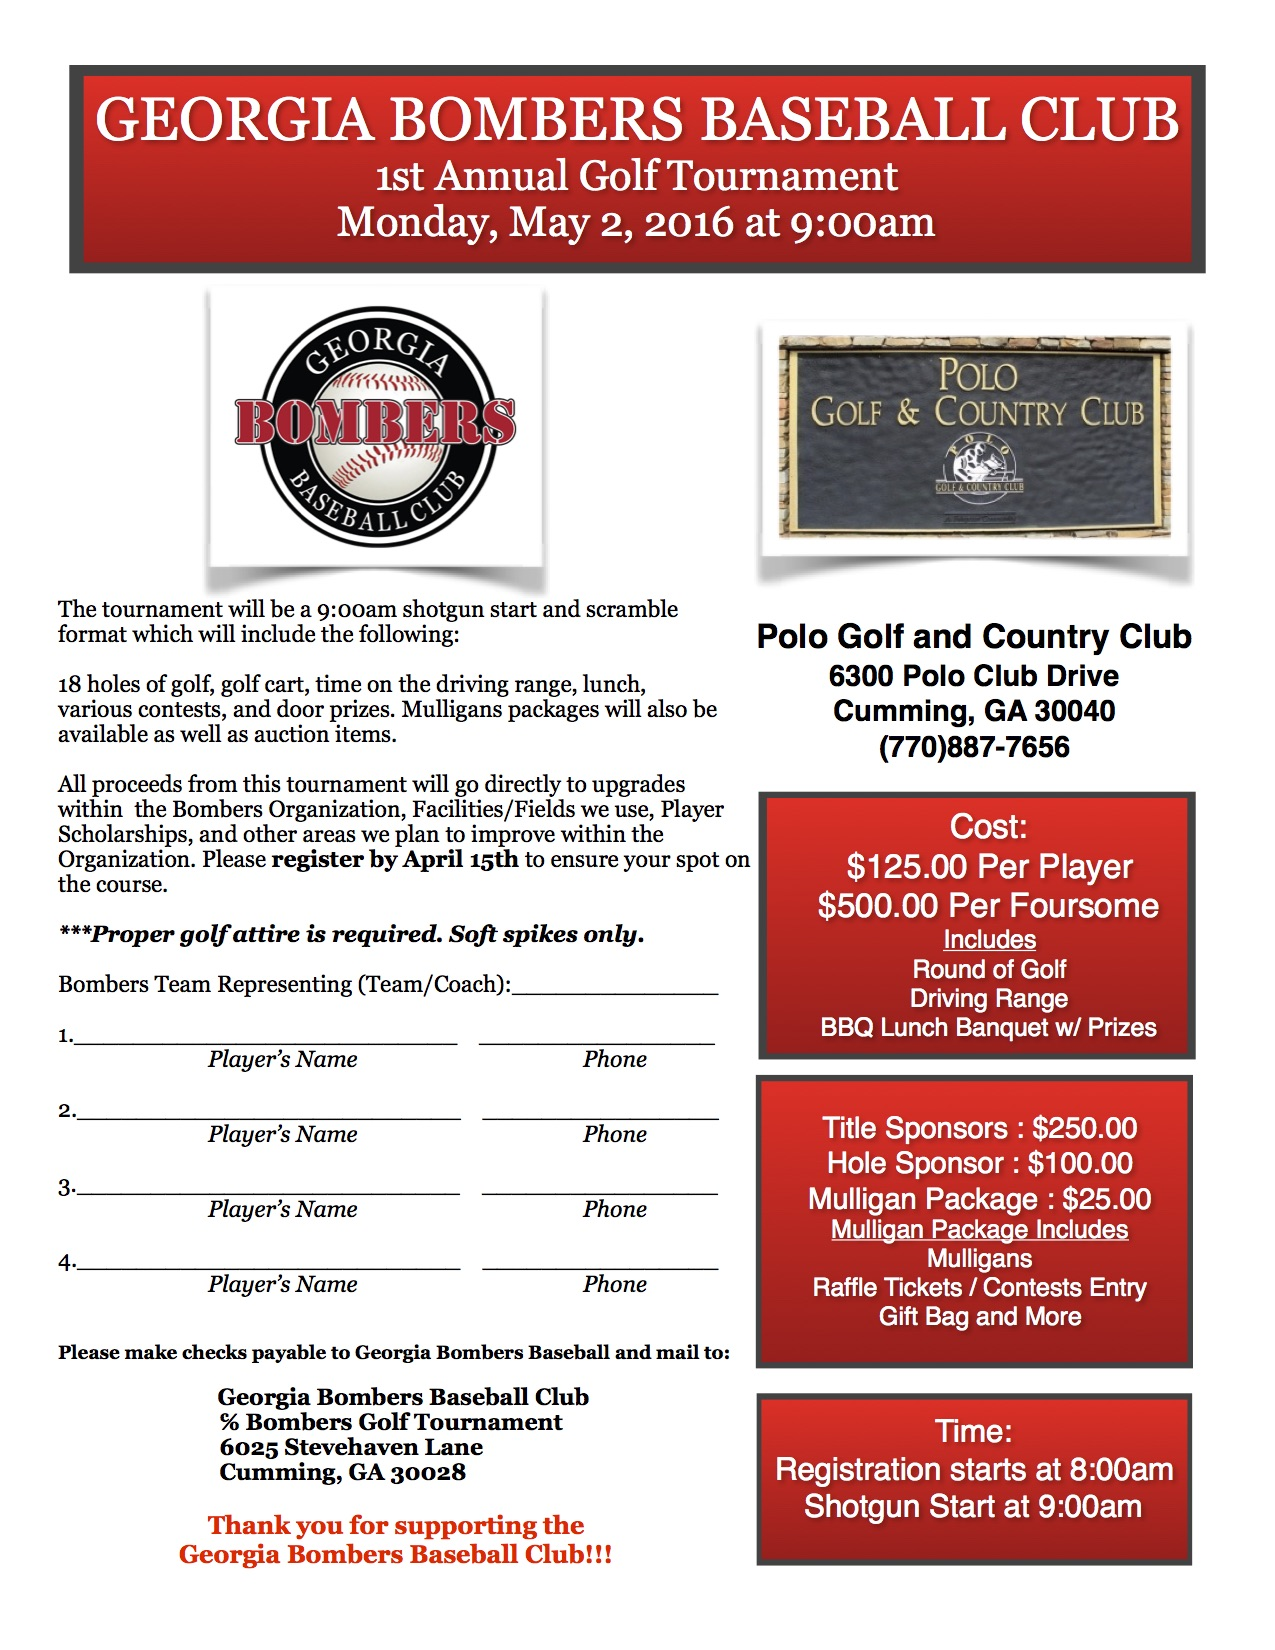 Bombers 1st Annual Golf Tournament